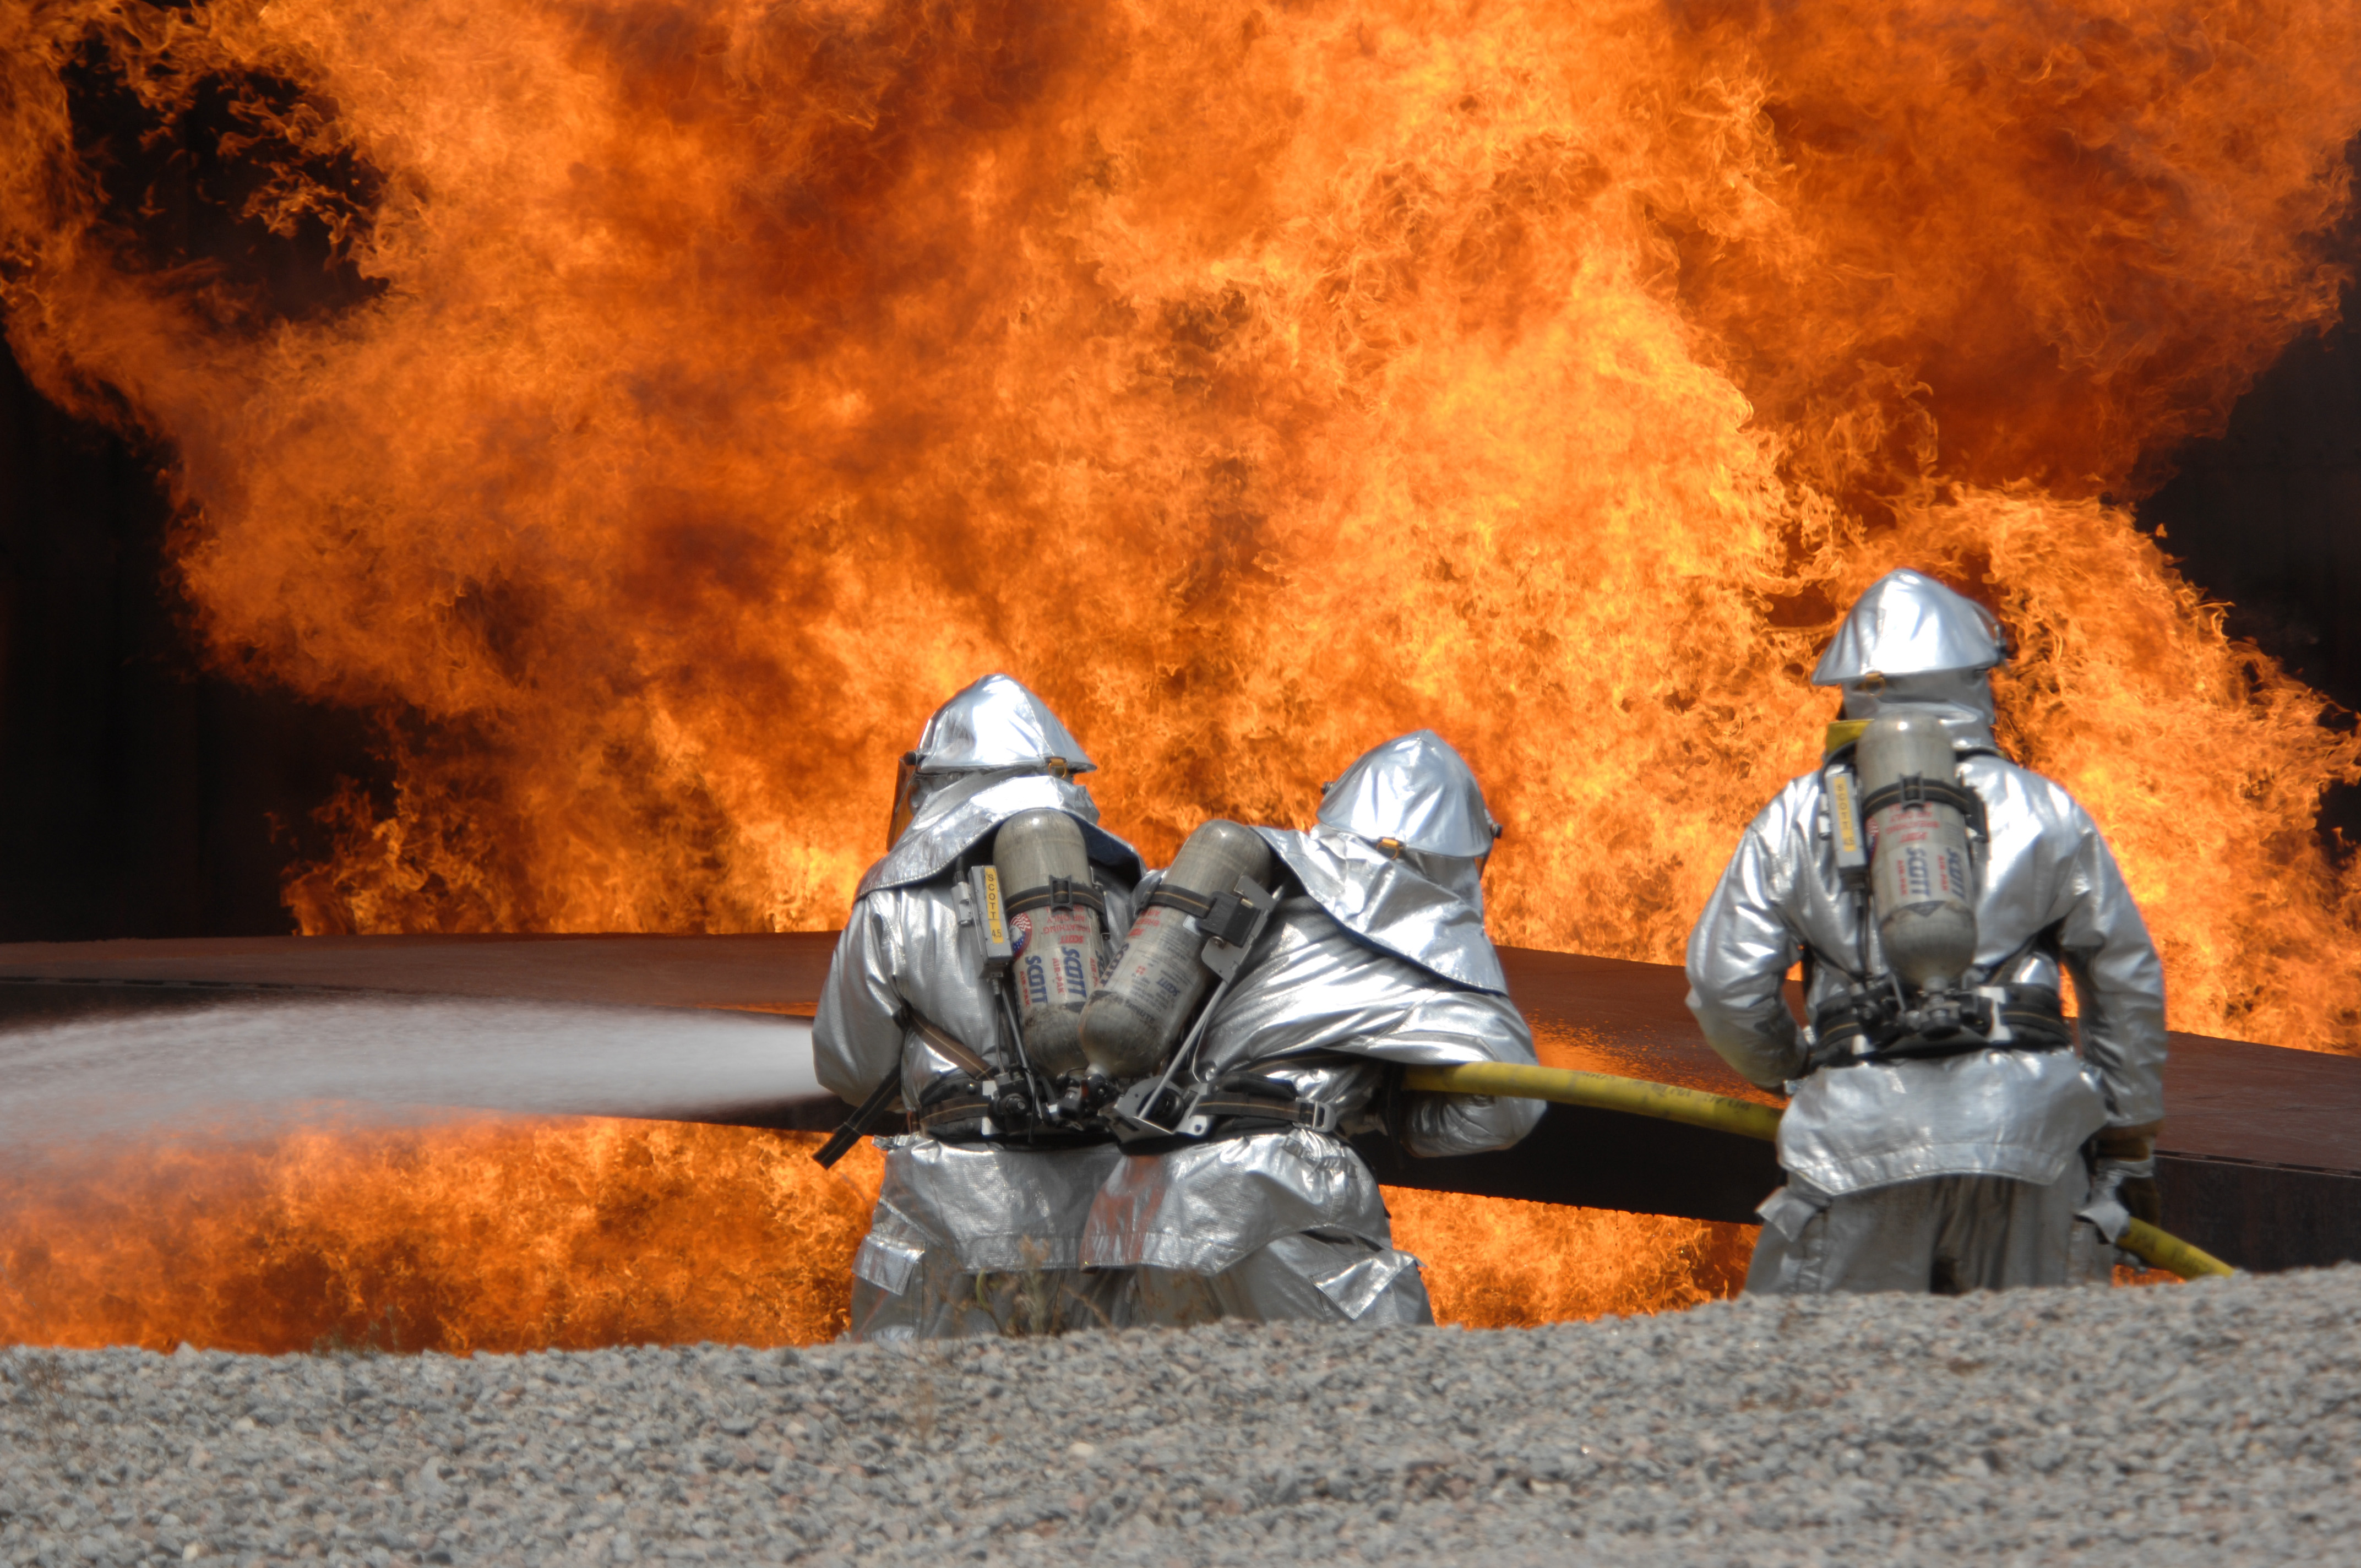 USAF airmen from the 20th Civil Engineer Squadron Fire Protection Flight neutralize a live fire during a field training exercise at Shaw Air Force Base.